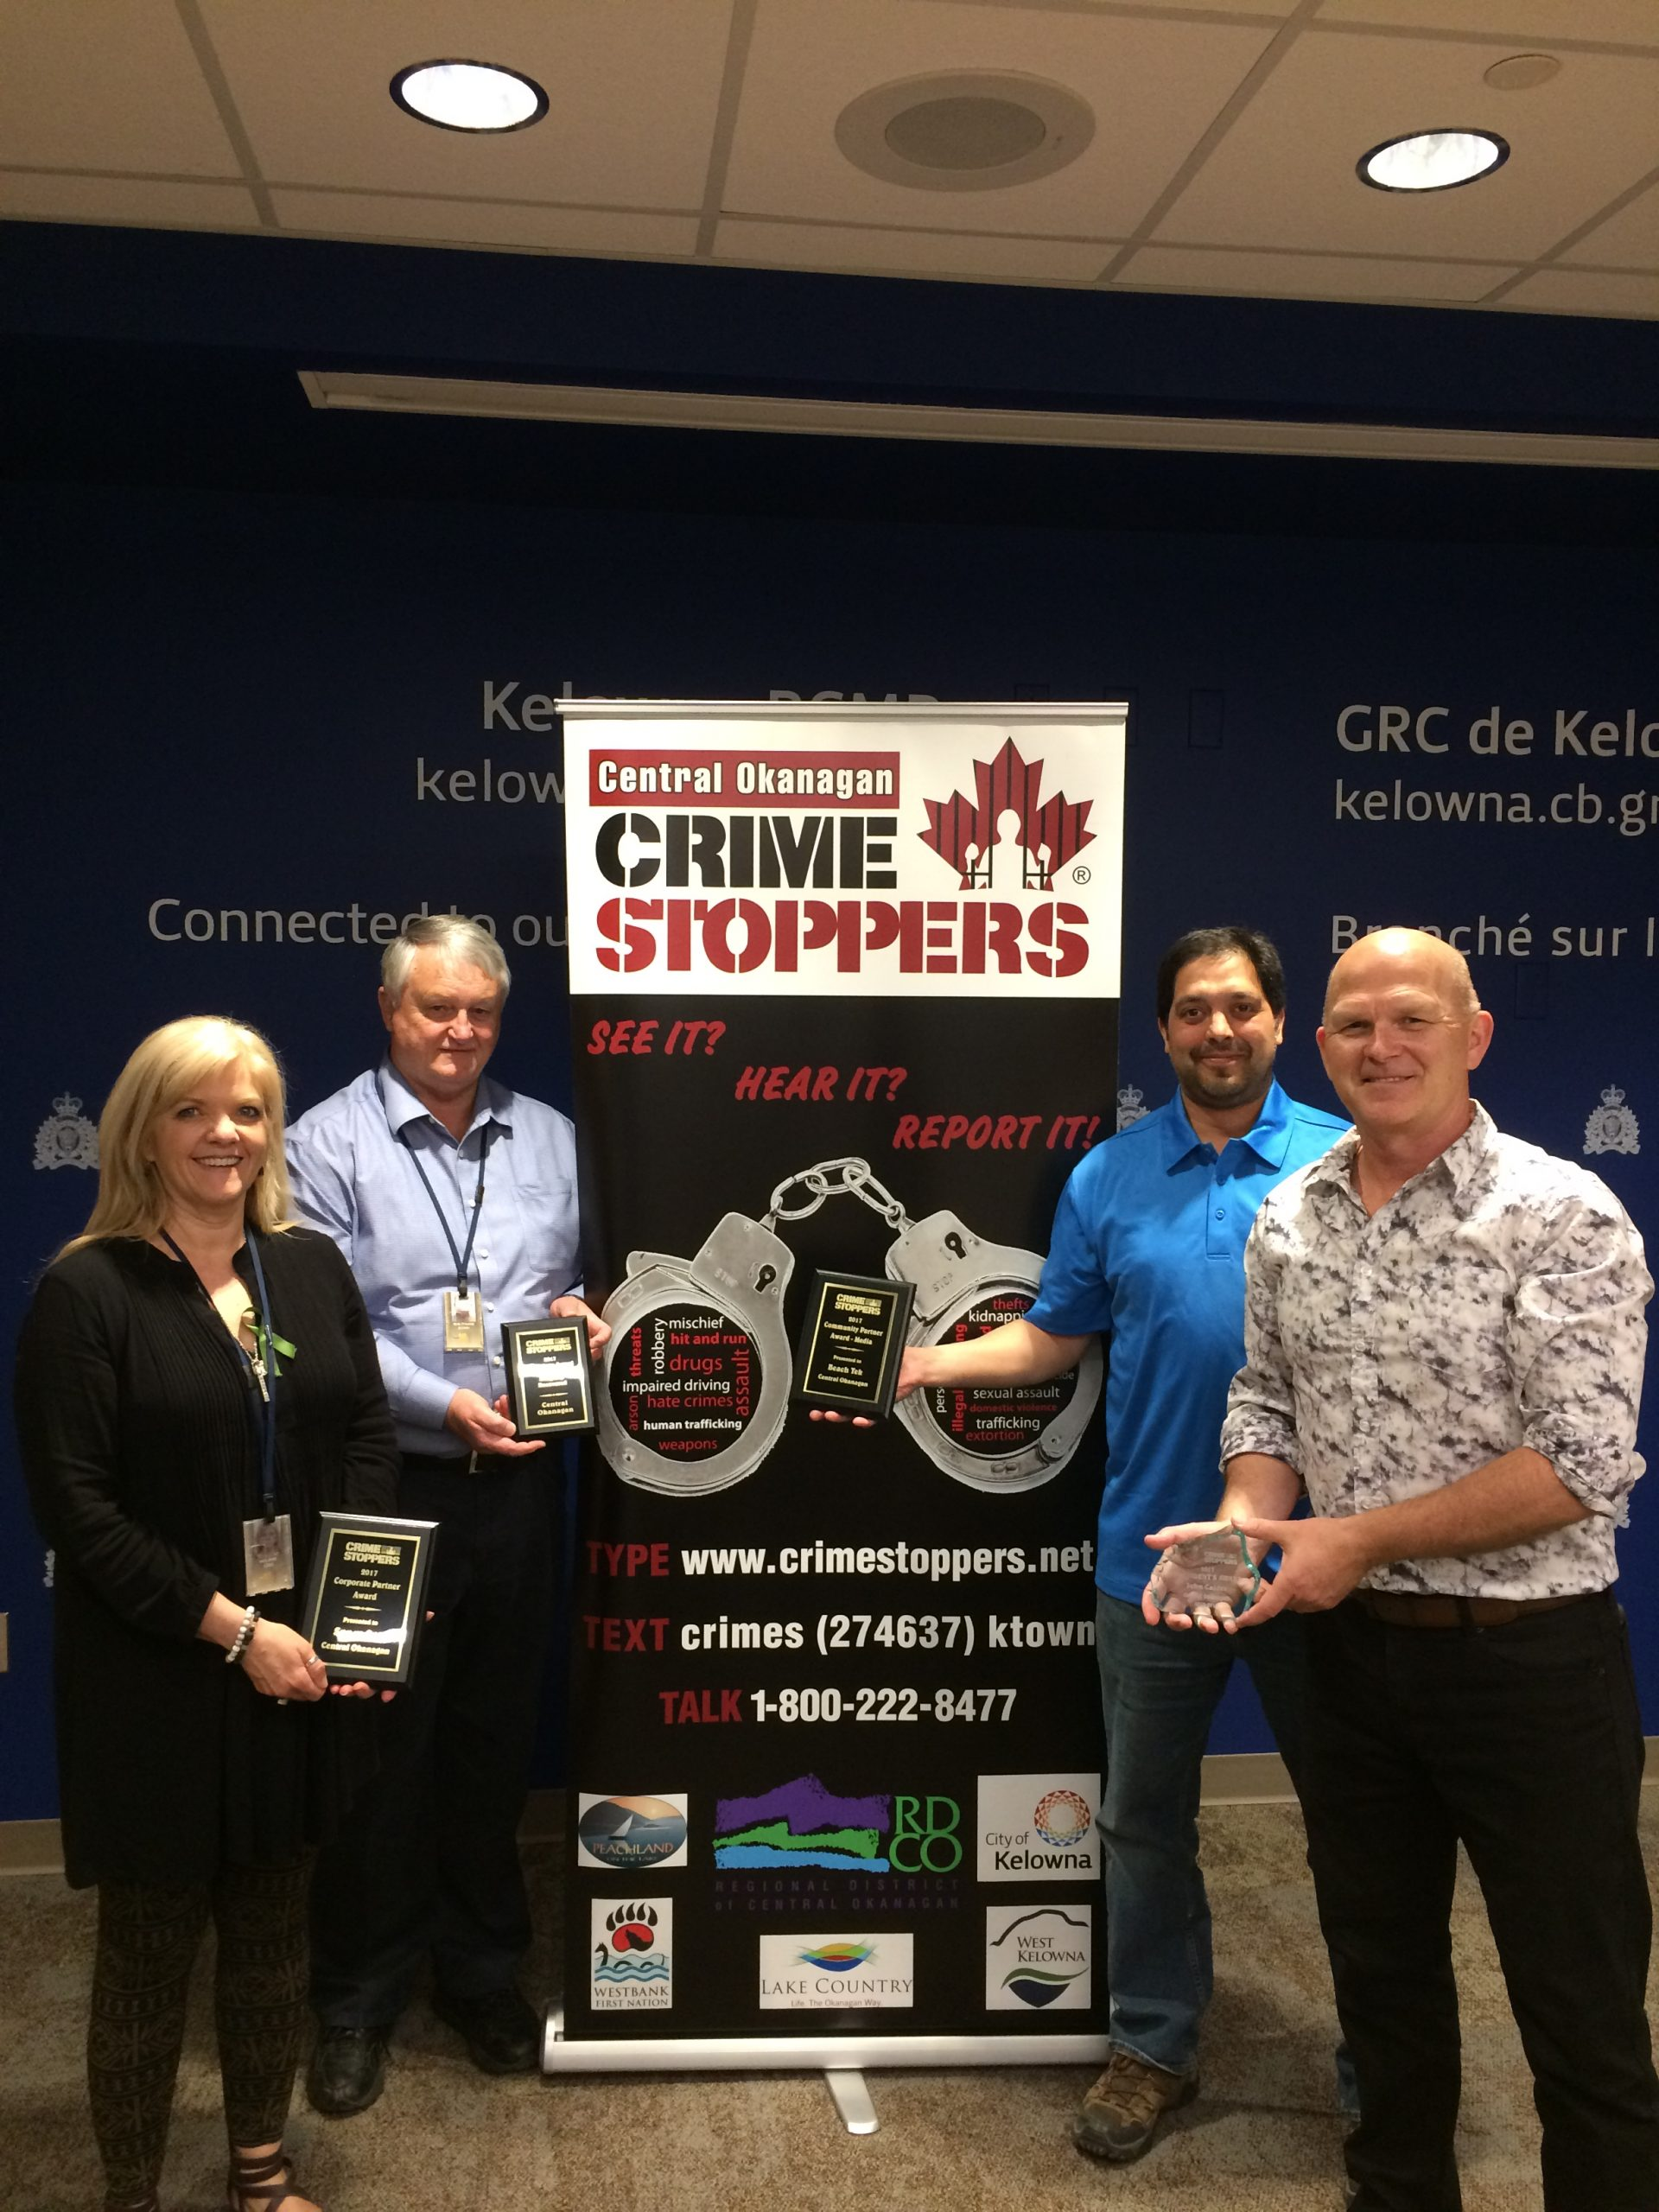 Central Okanagan Crime Stoppers Receives Awards